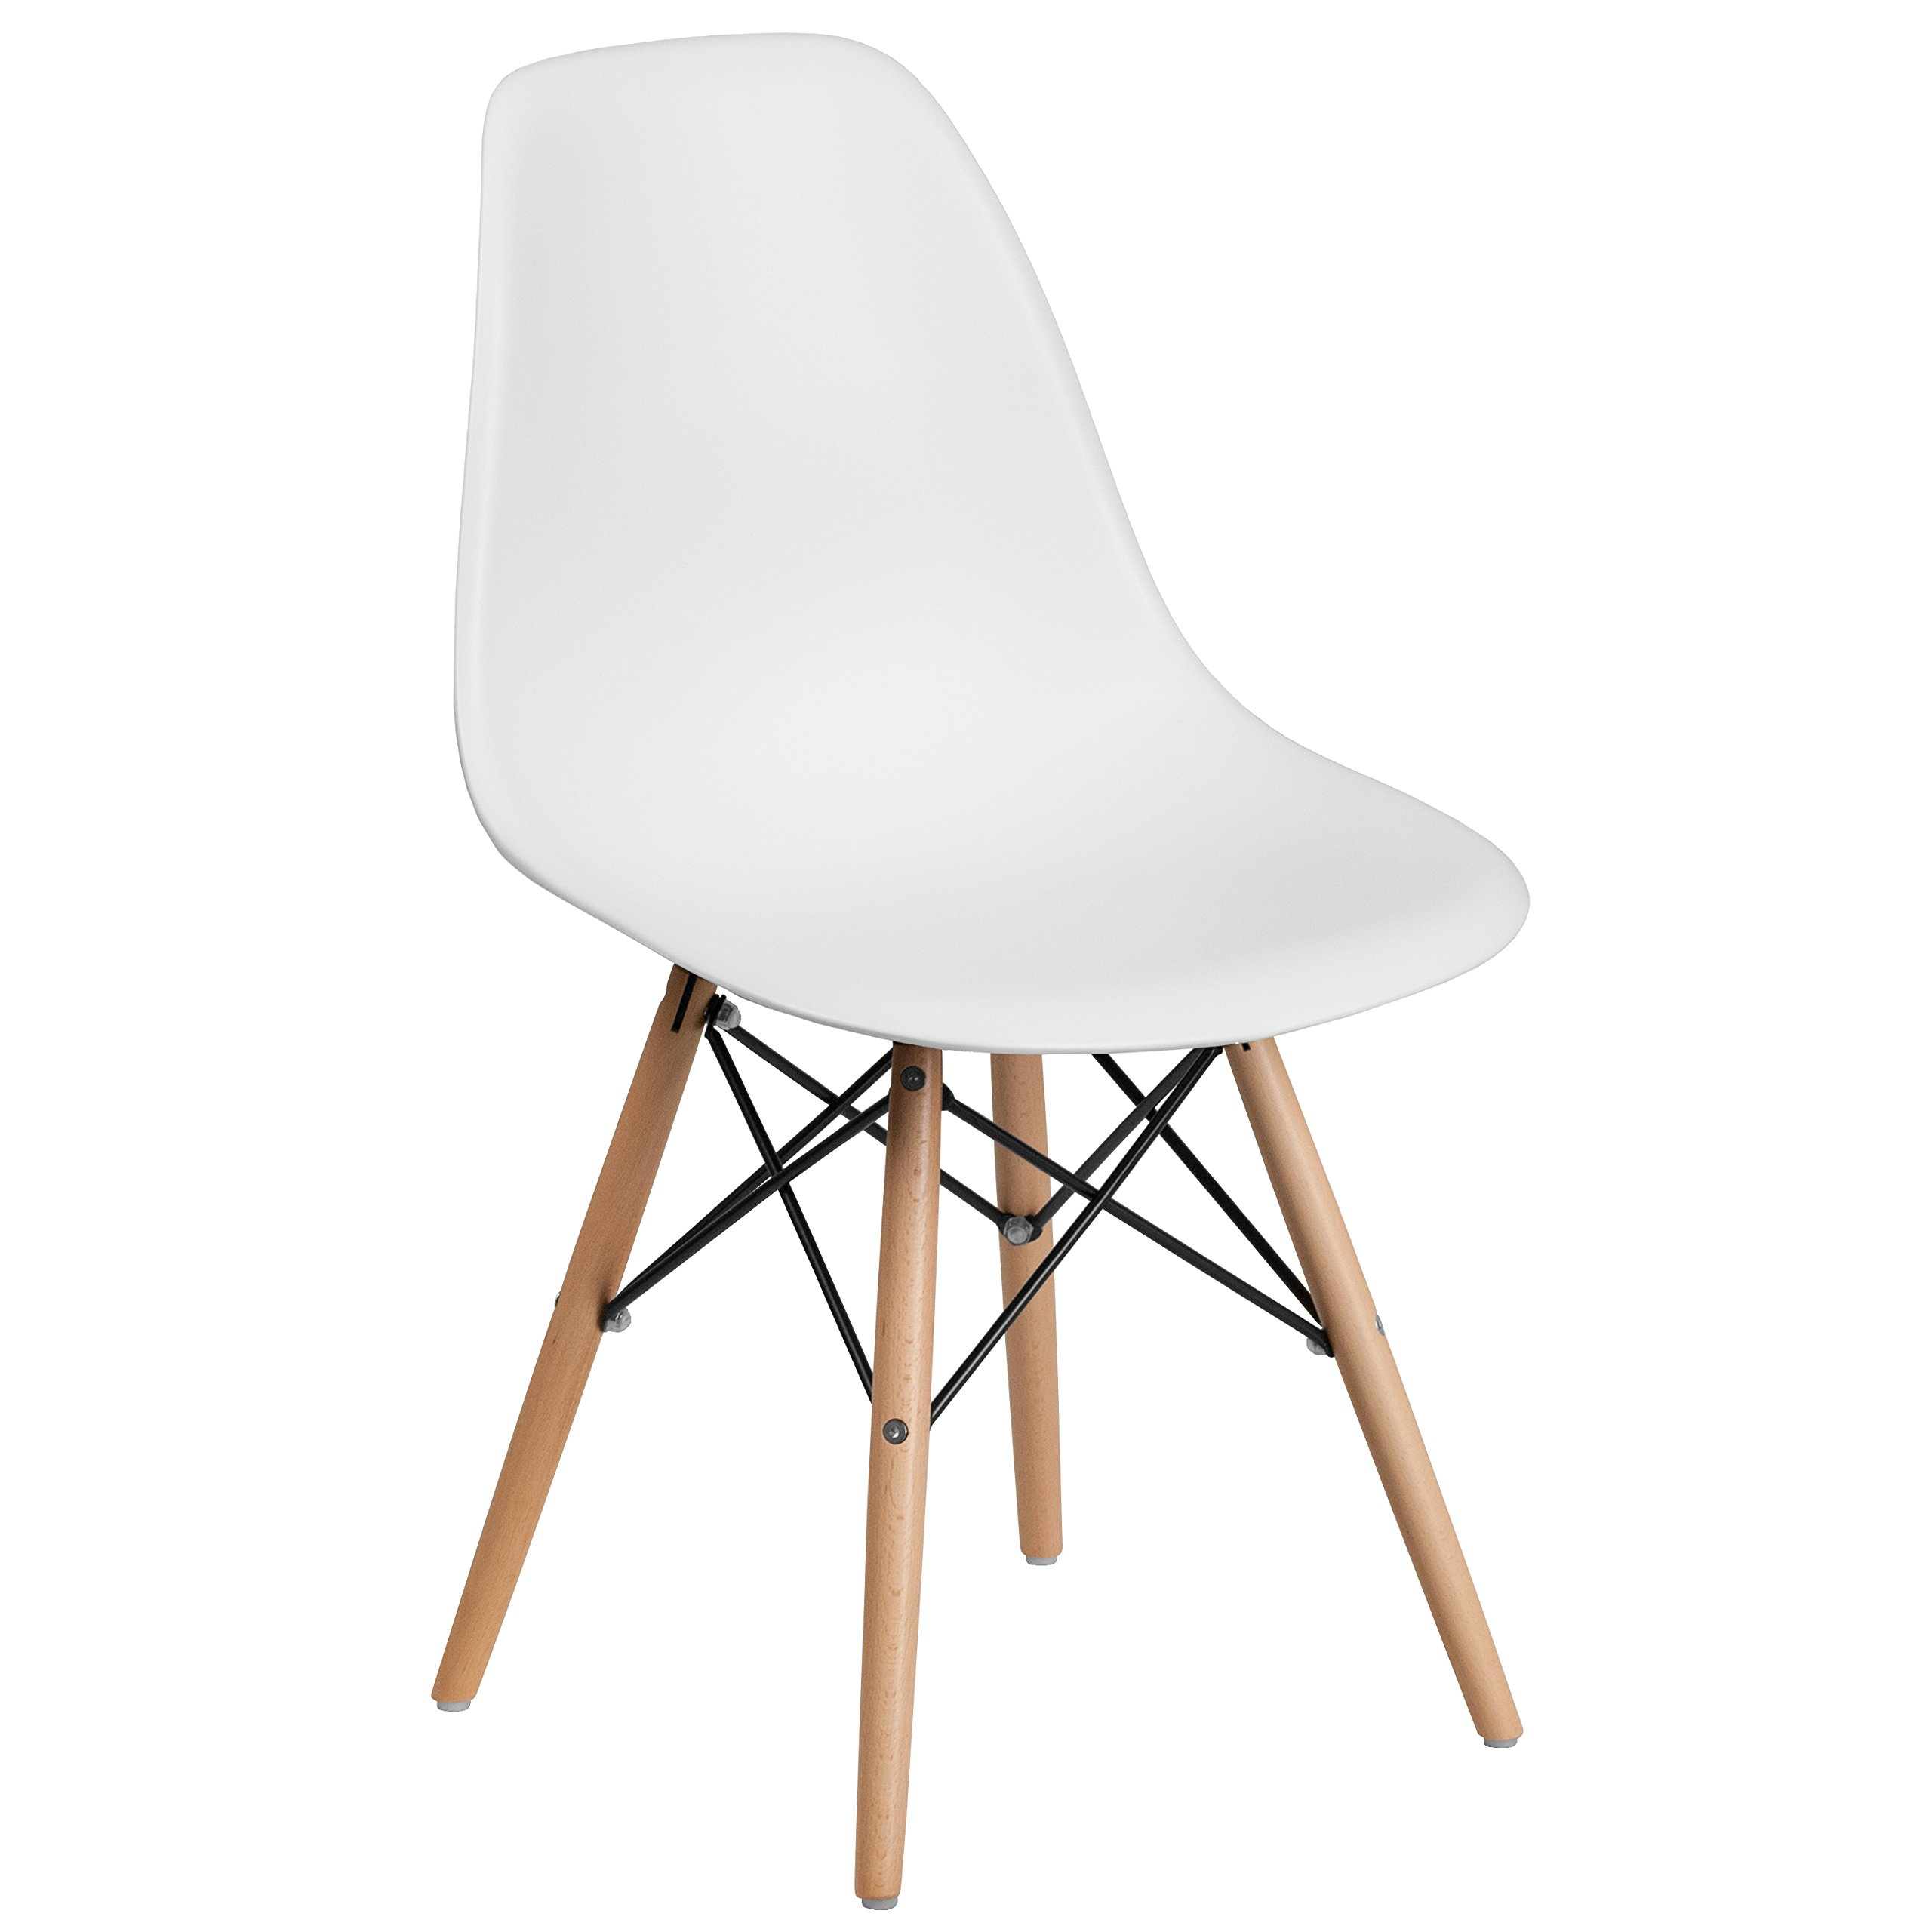 Flash Furniture Elon Series White Plastic Chair with Wooden Legs by Flash Furniture